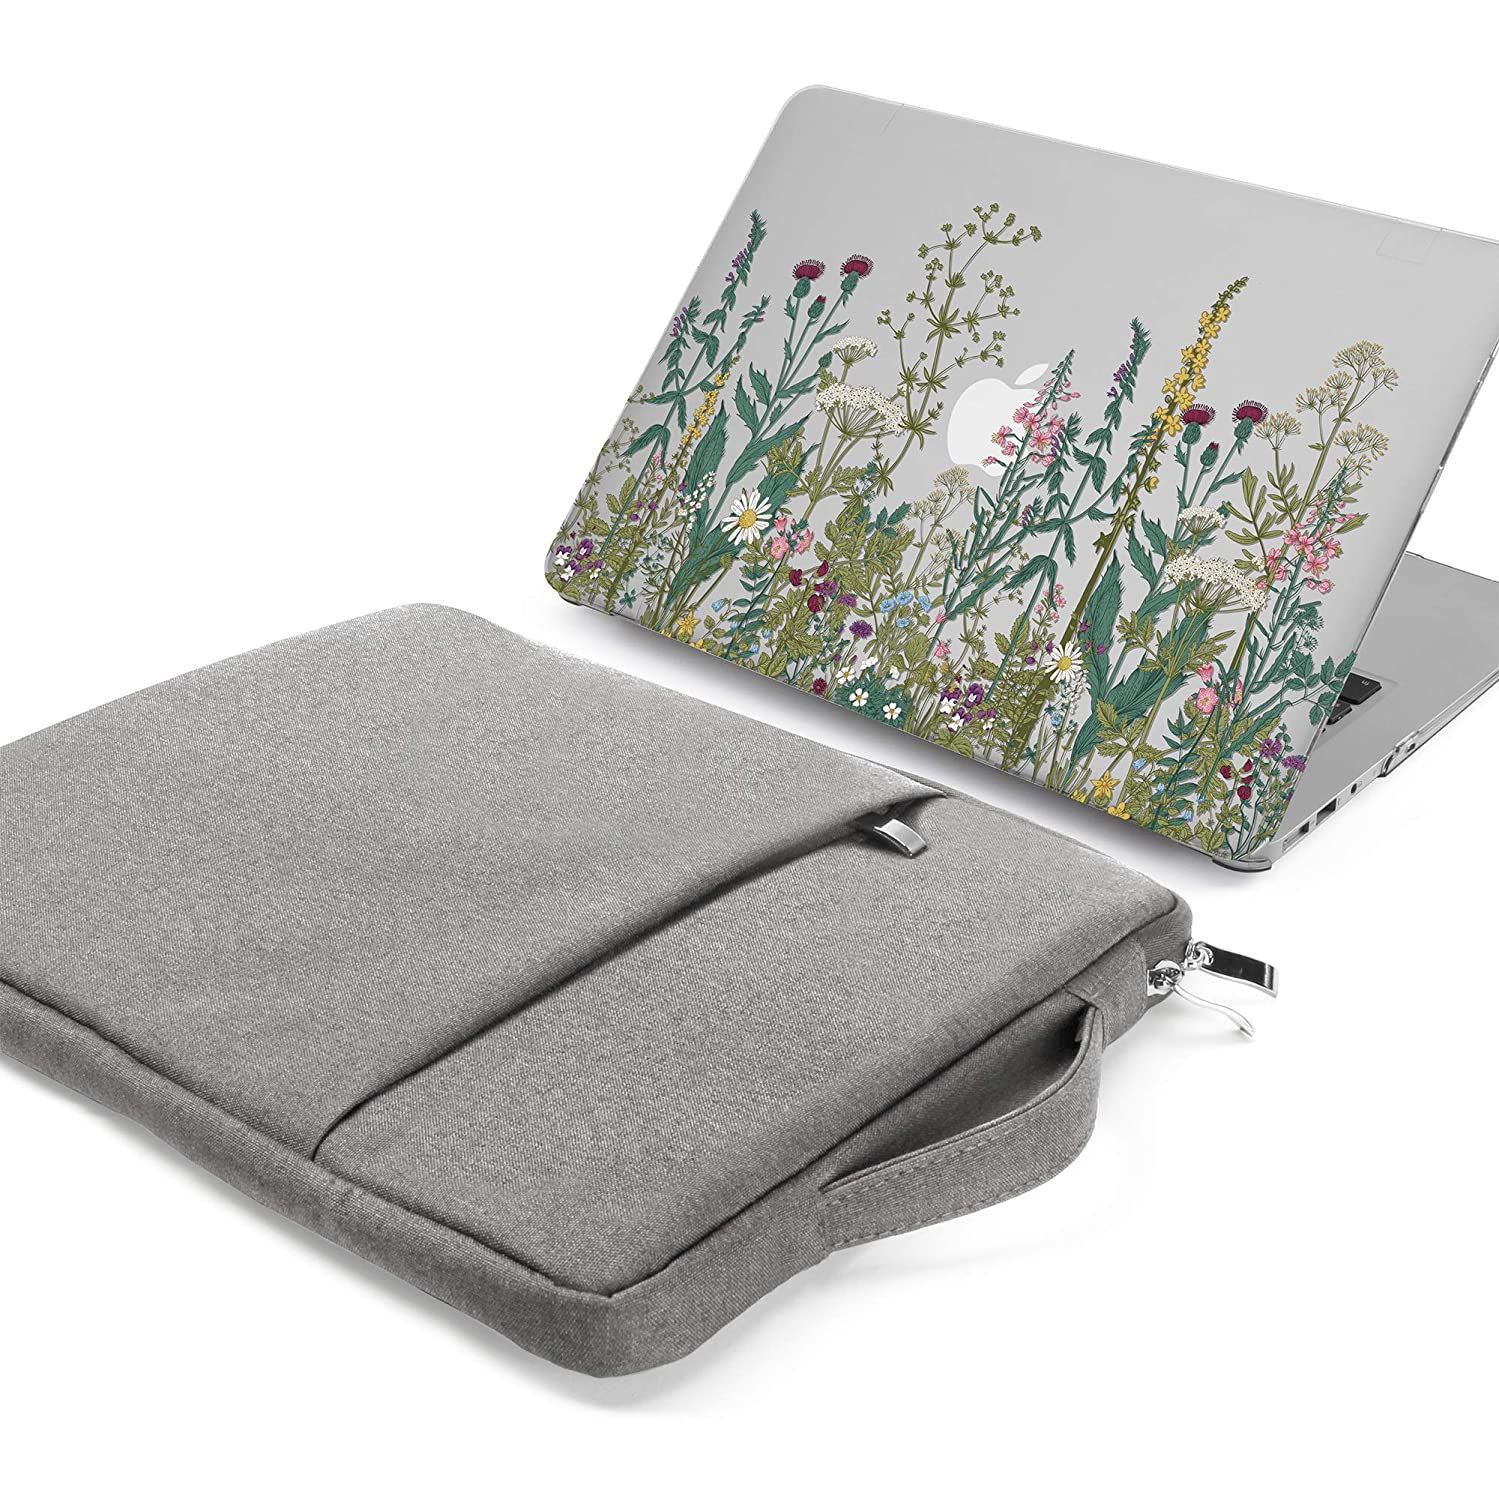 GMYLE MacBook Air 13 Inch Case A1466 / A1369 Older Version 2010-2017 2 in 1 Bundle, Hard Plastic Shell Cover and 13-13.3 Inch Carrying Sleeve Bag with Handle - Garden Flower Set